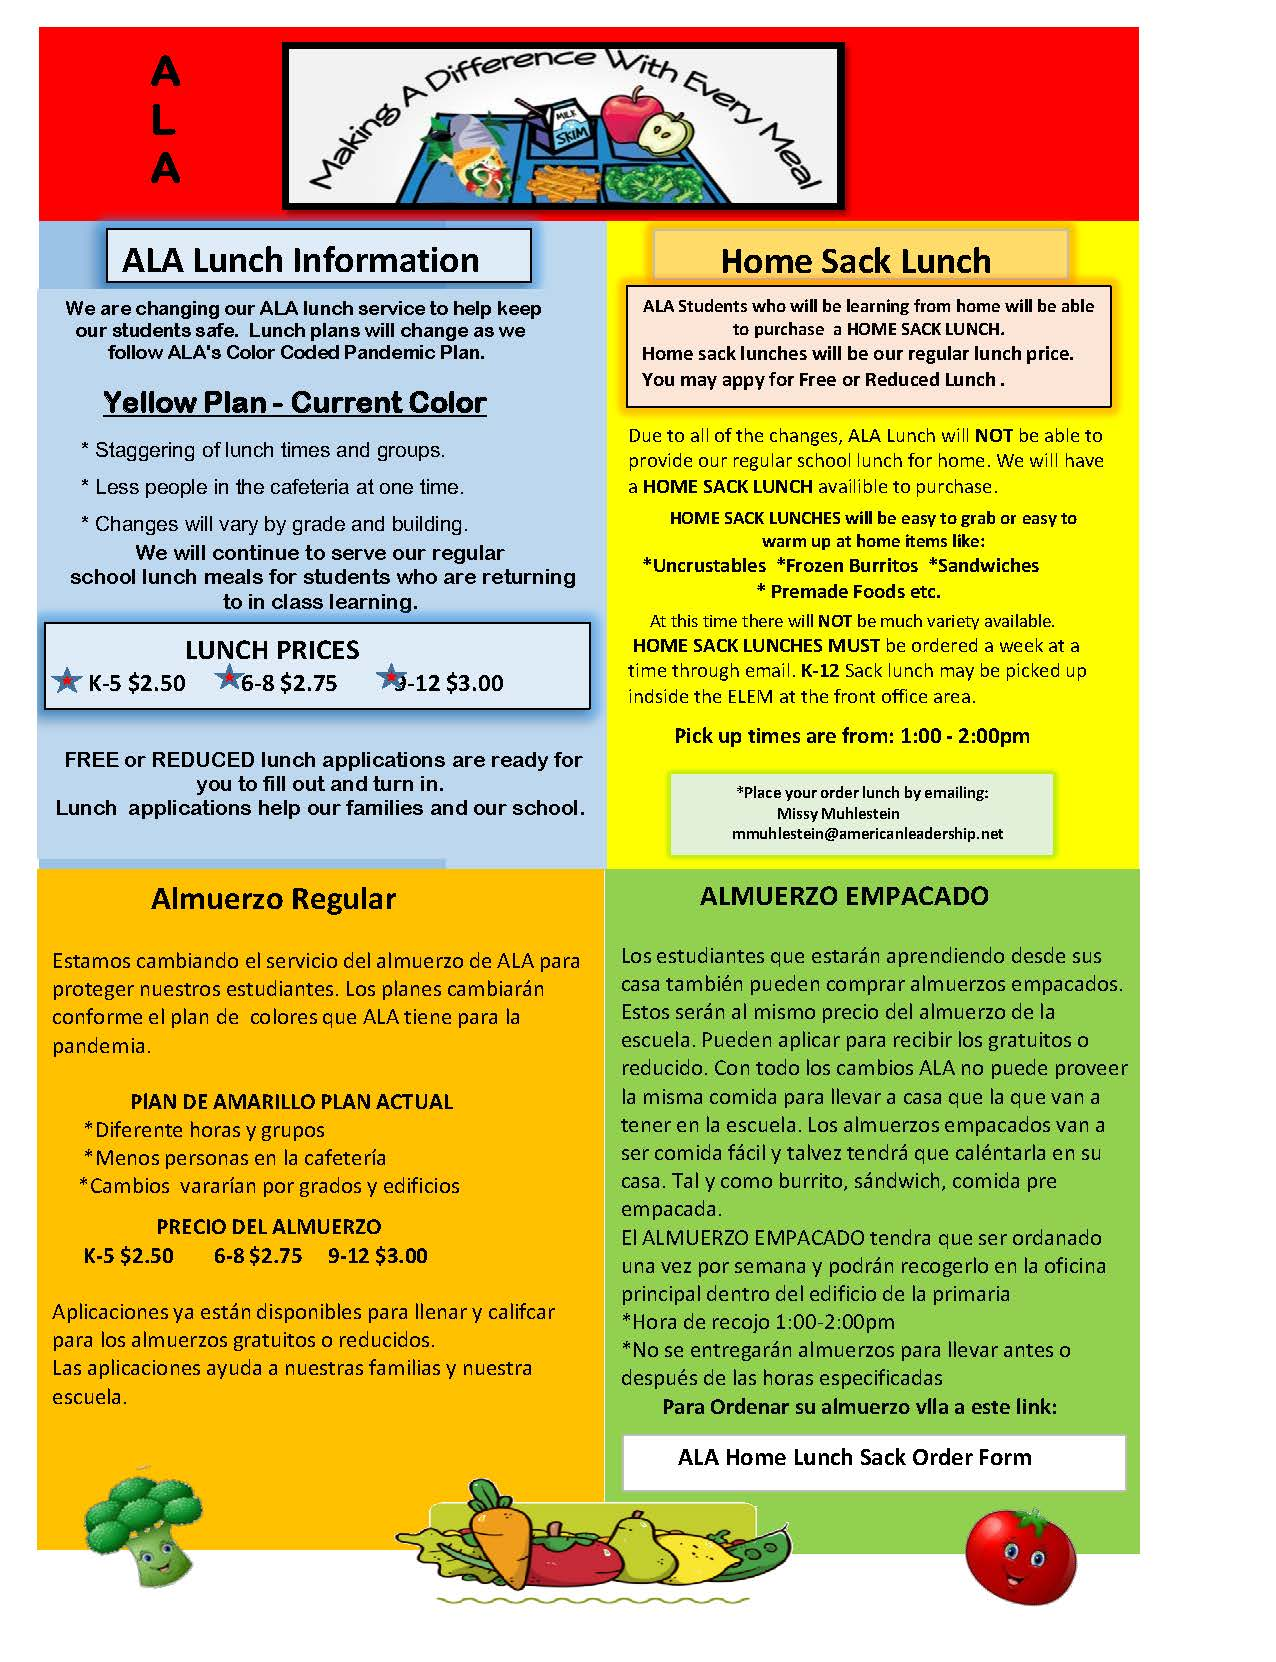 ALA LUNCH NEWSLETTER AND MONTHLY LUNCH MENU